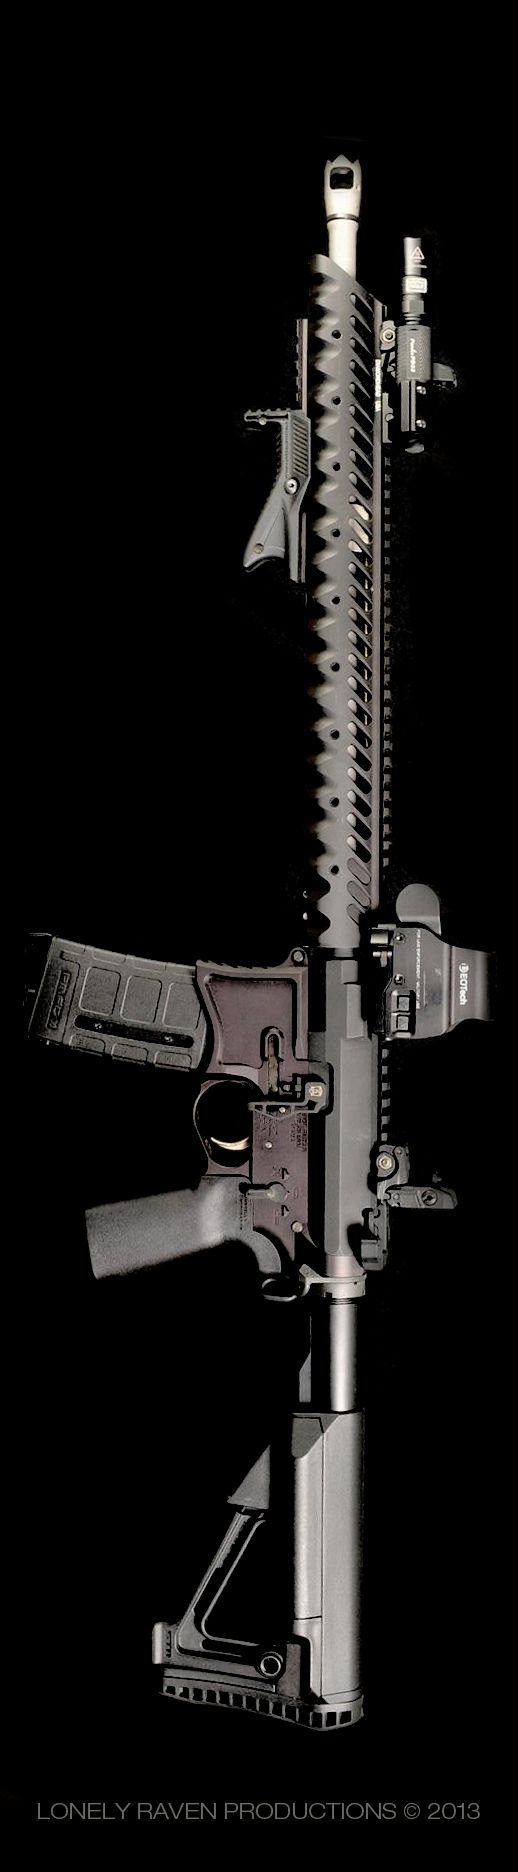 That's a sexy looking gun...n-not that I would ever be attracted to inanimate objects...